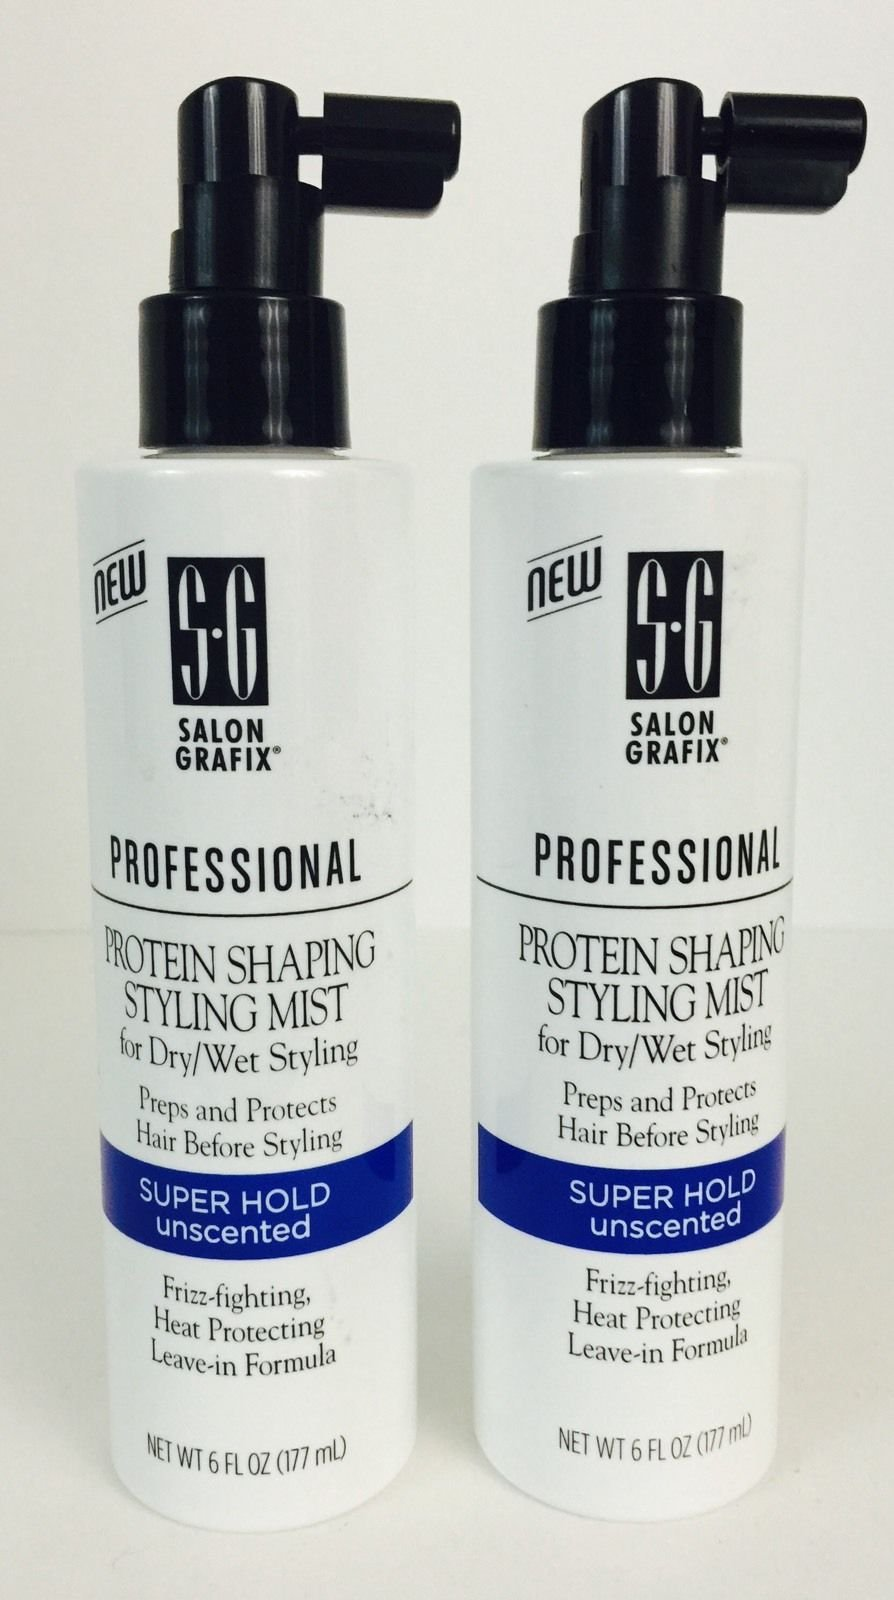 Salon Grafix Professional Protein Shaping Styling Mist, Super Hold, Unscented, 6 Fl Oz (Pack of 2)